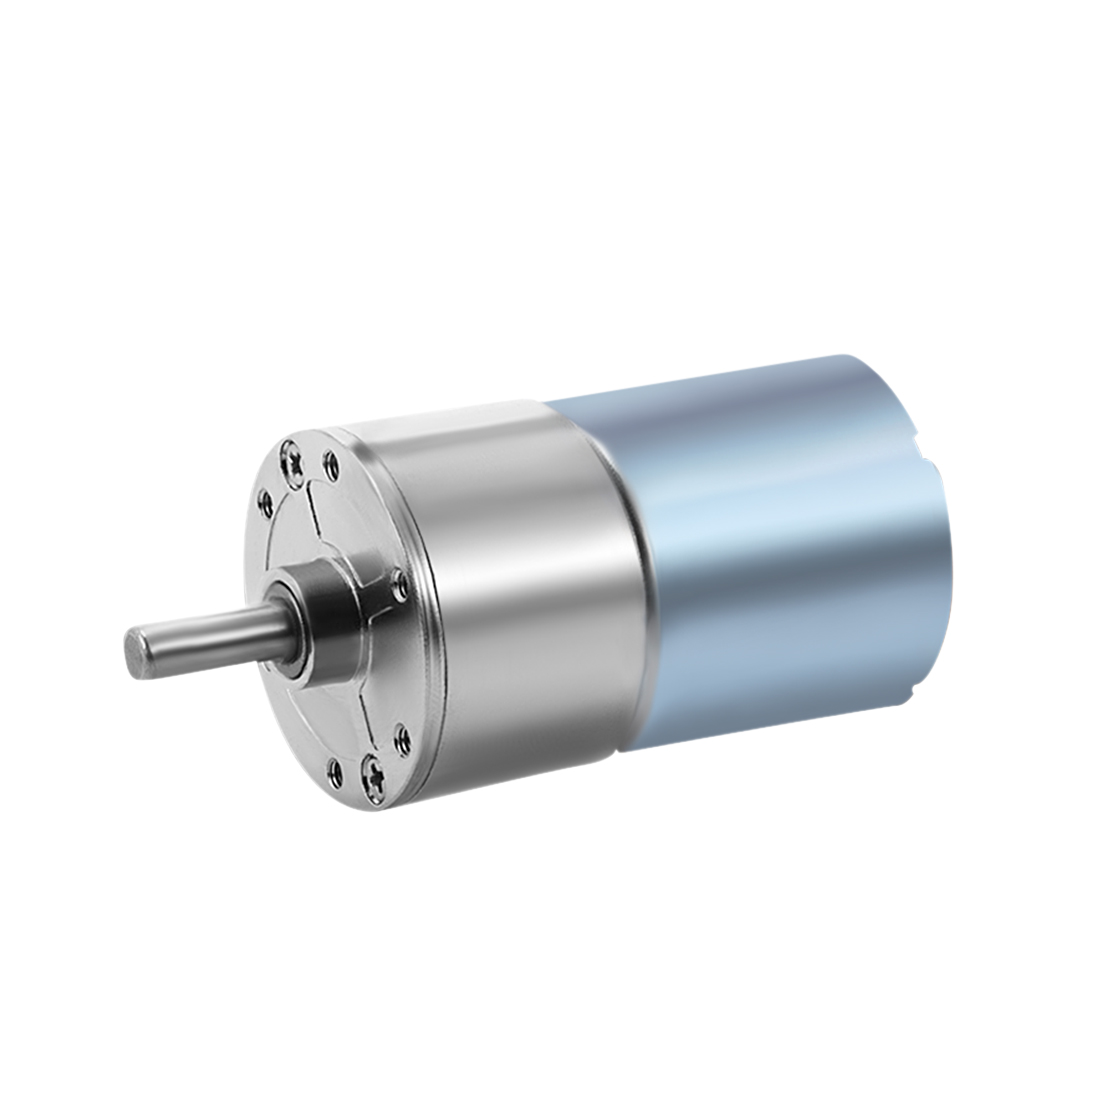 DC 12V 30RPM Micro Gear Box Motor Speed Reduction Electric Gearbox Centric Output Shaft